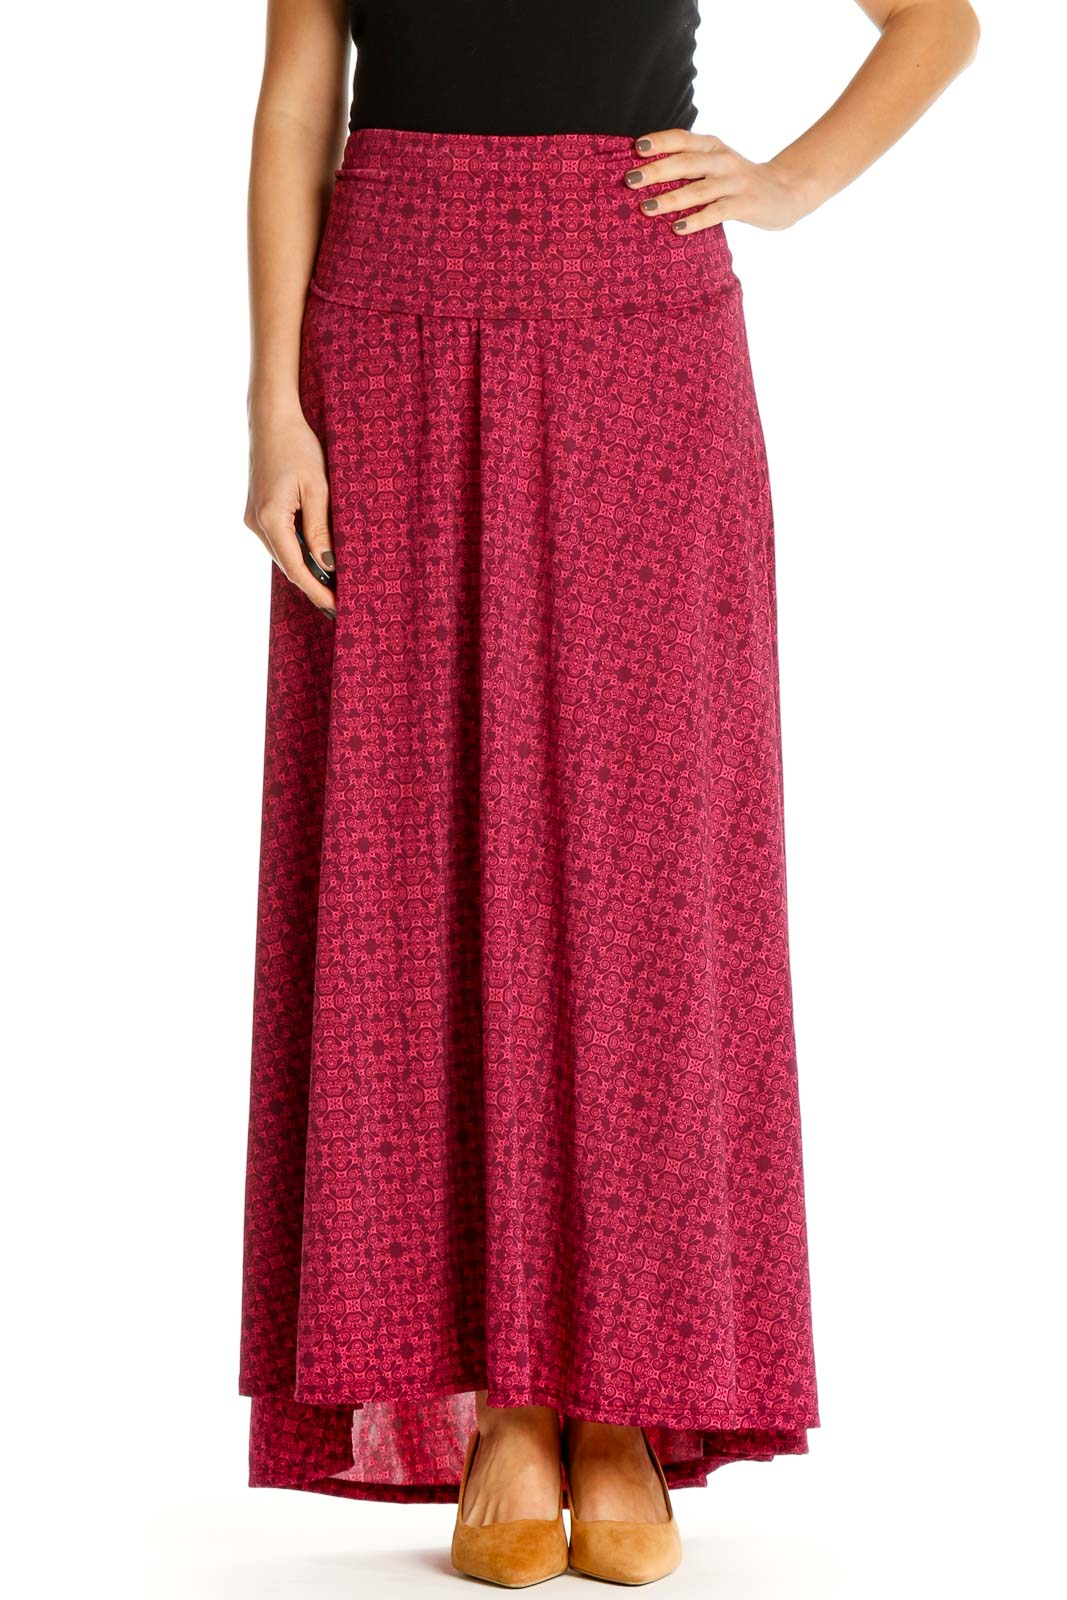 Pink Printed Retro Flared Skirt Front